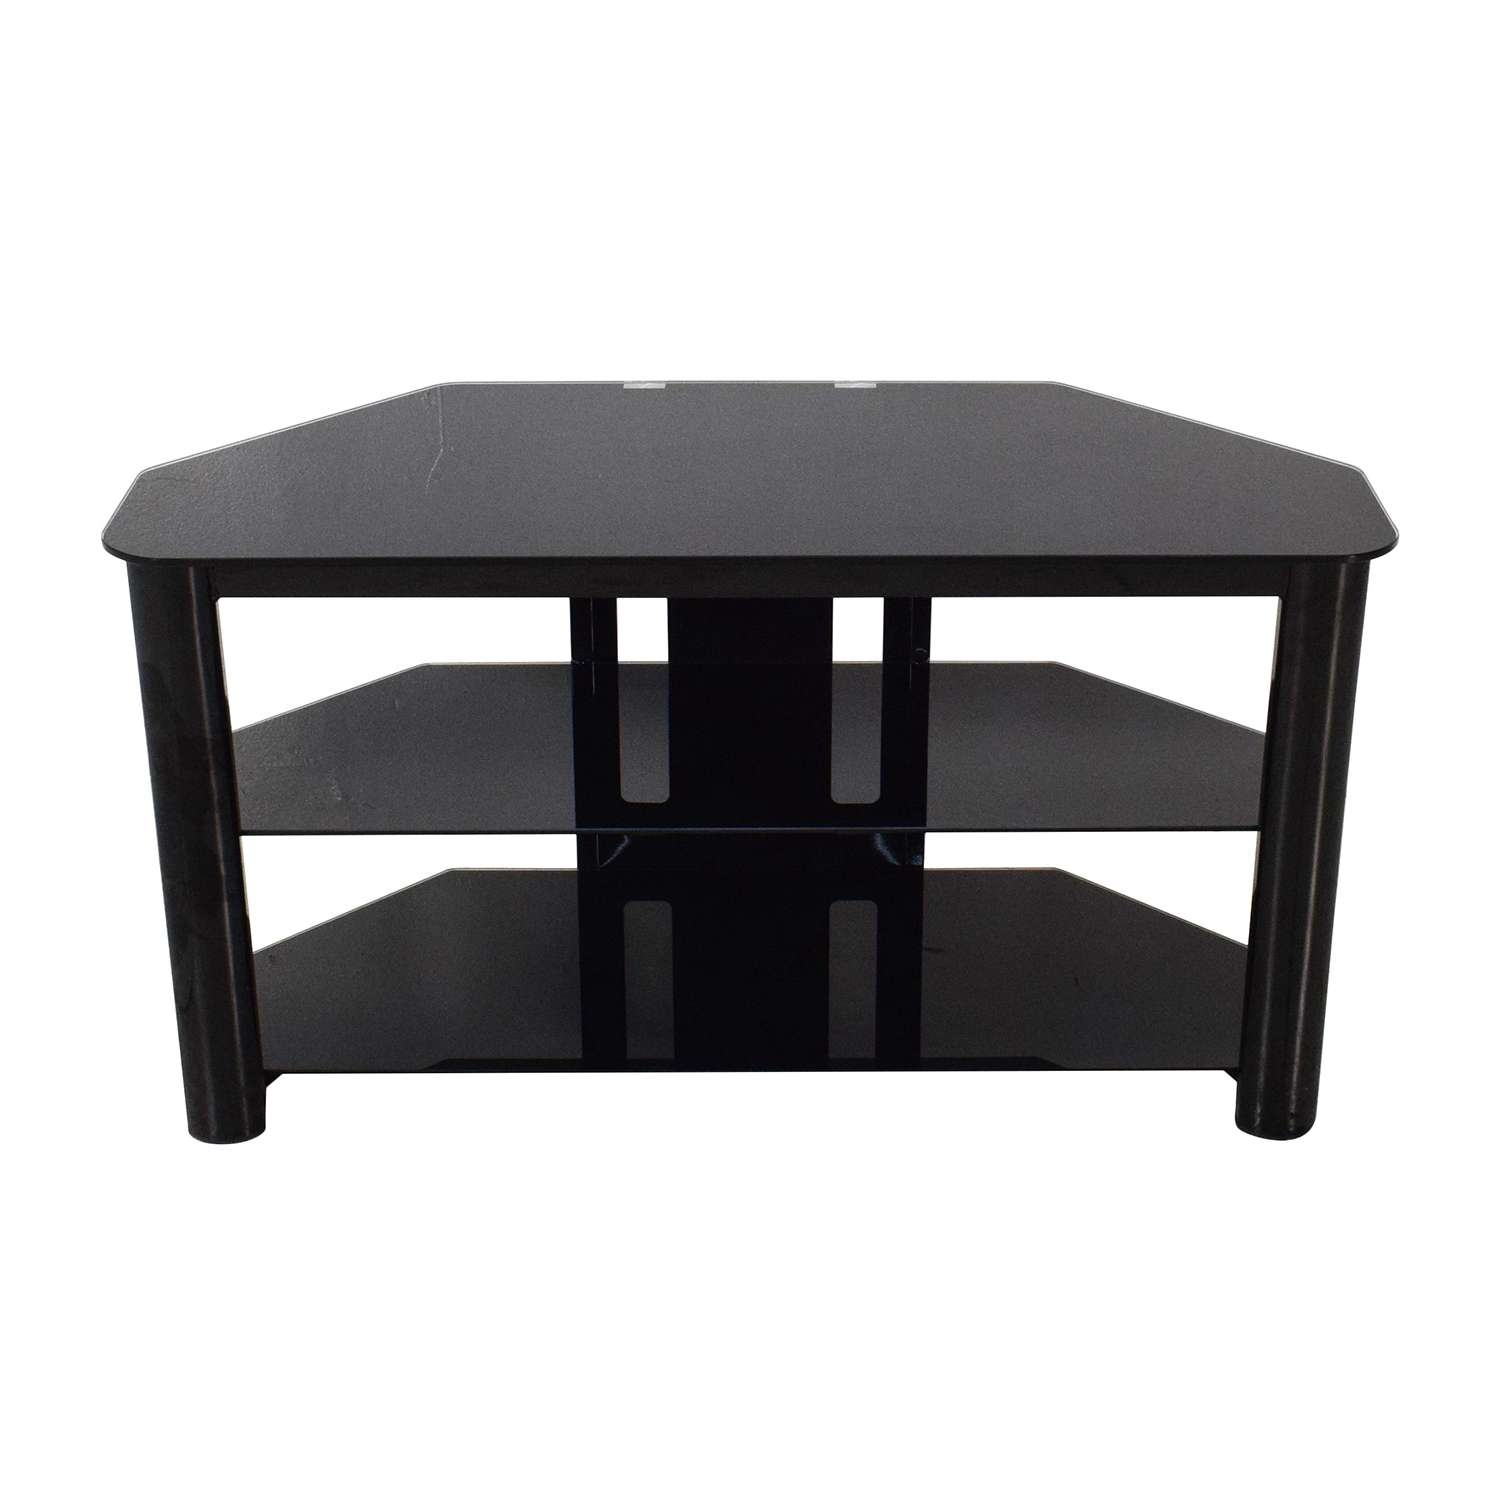 61% Off – Best Buy Best Buy Black Glass Tv Stand / Storage With Regard To Black Glass Tv Stands (View 1 of 15)